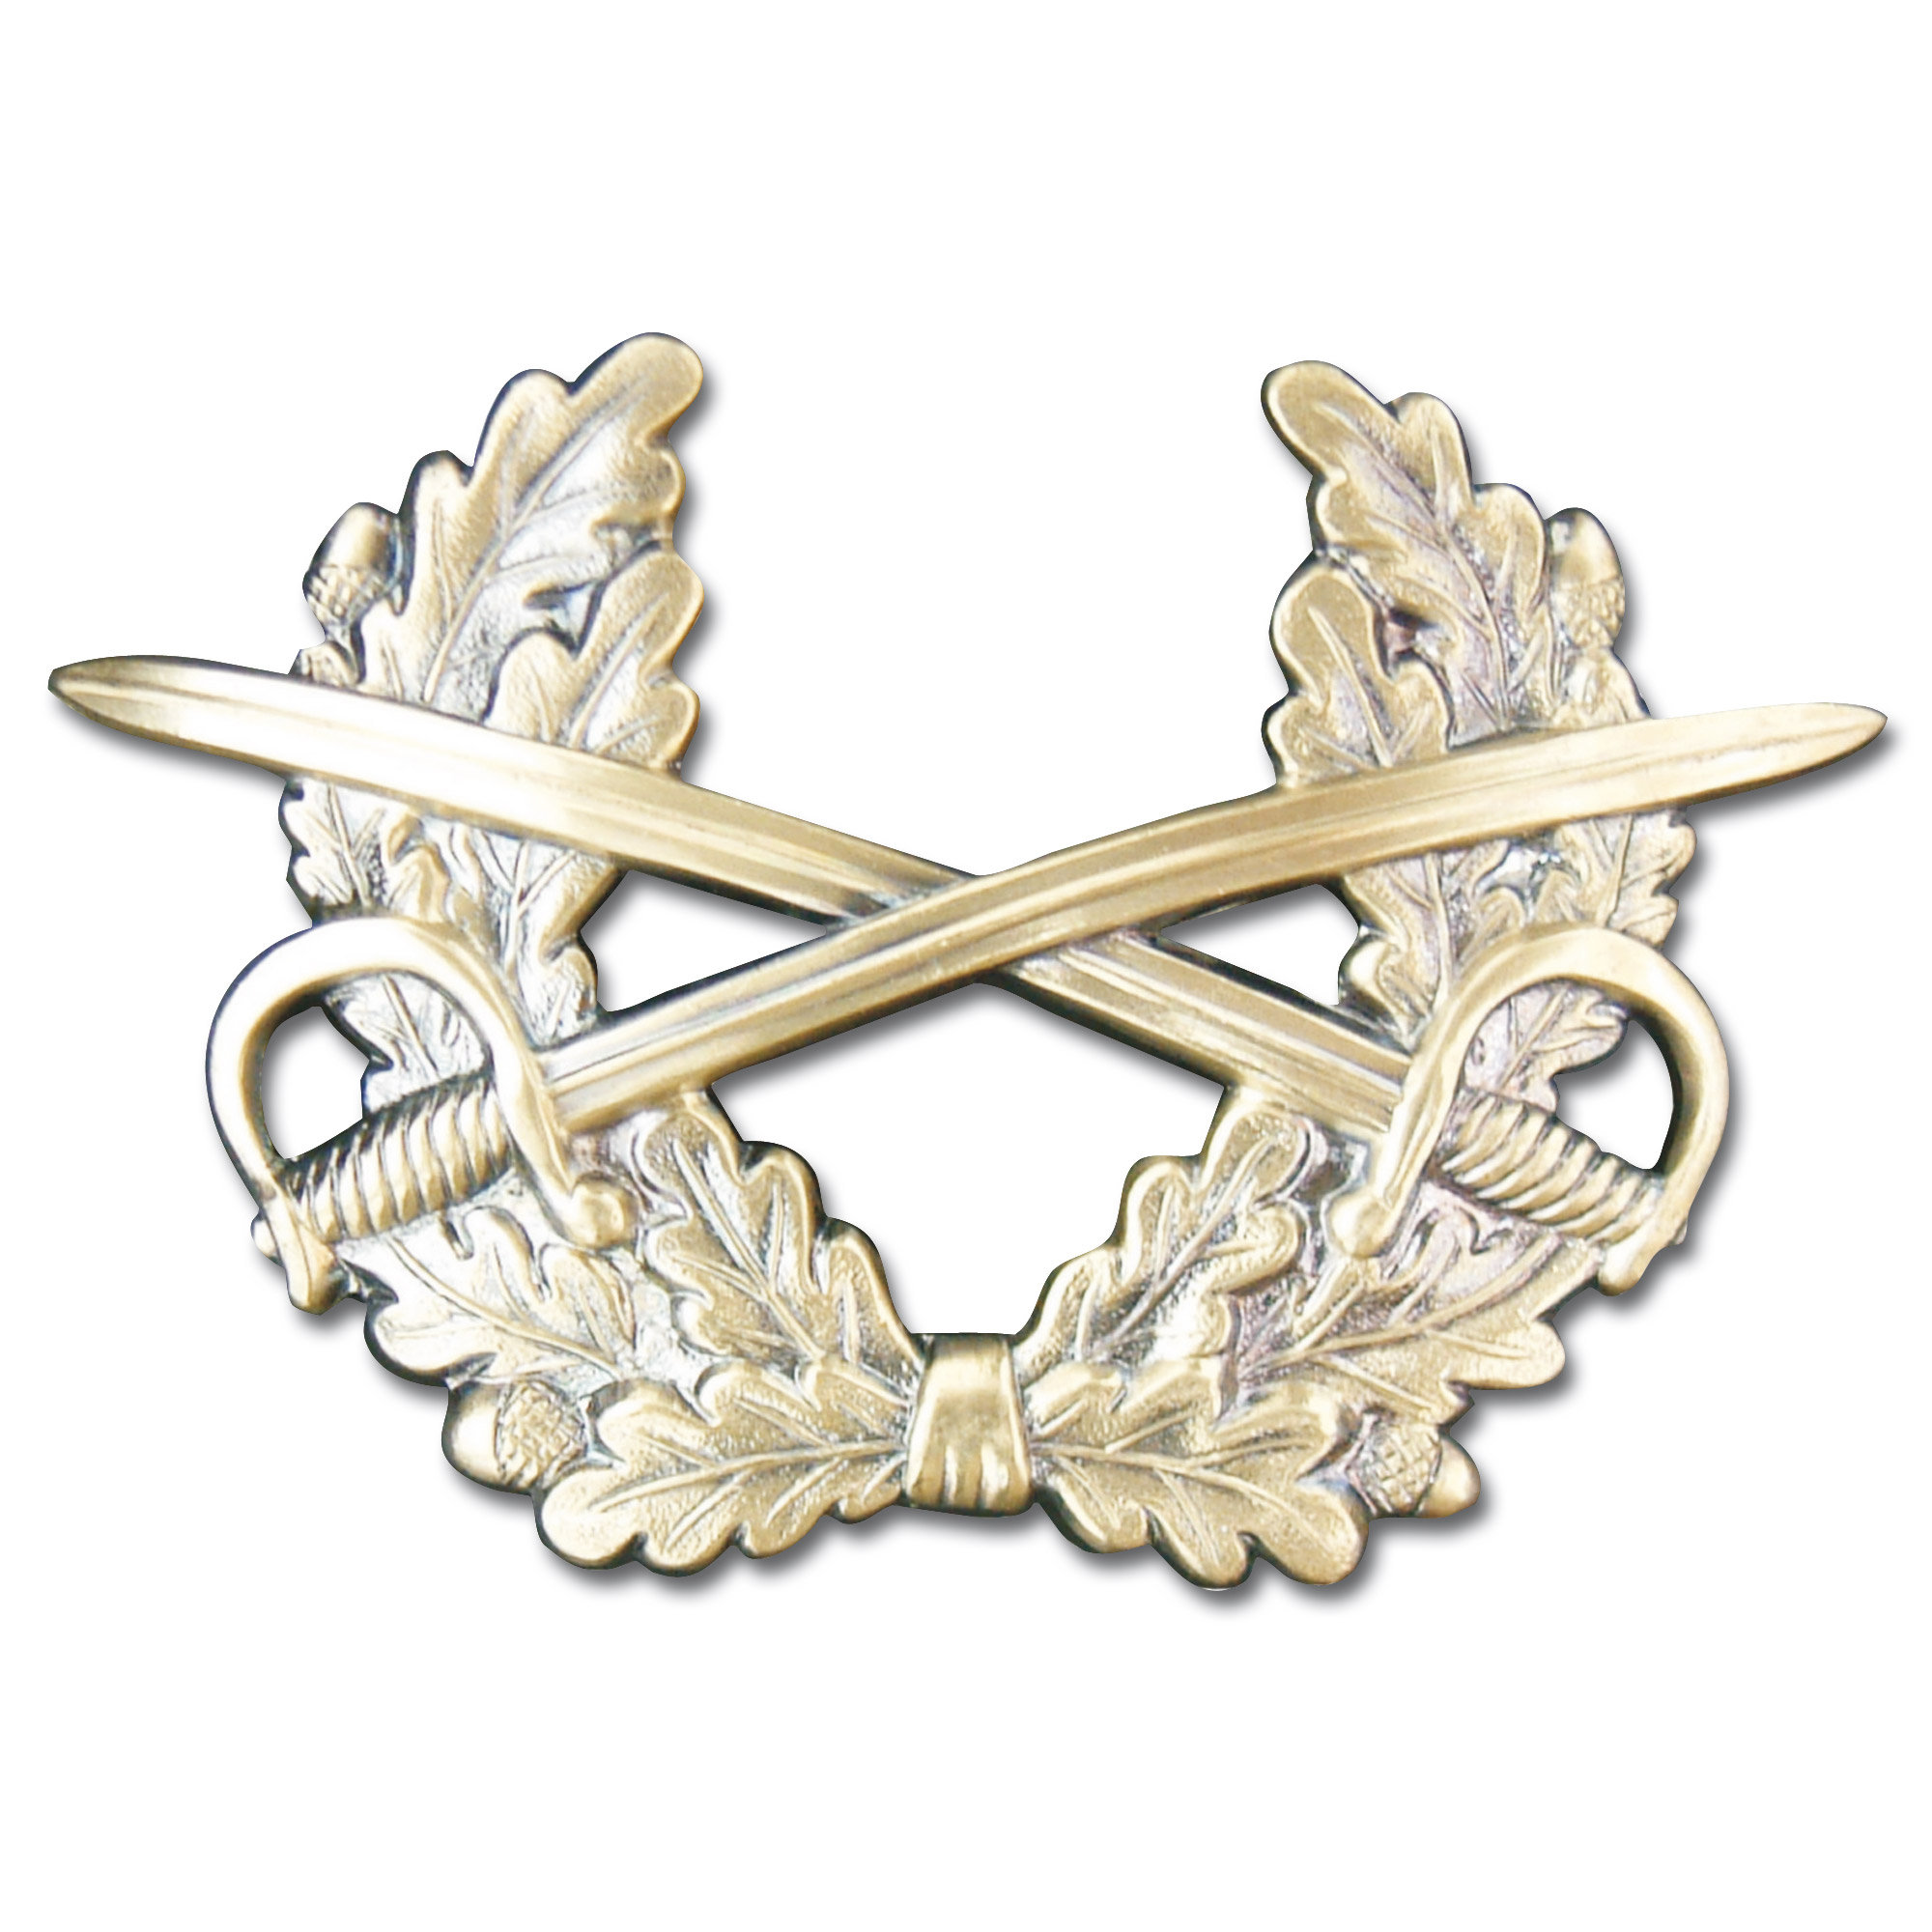 German Army cap badge